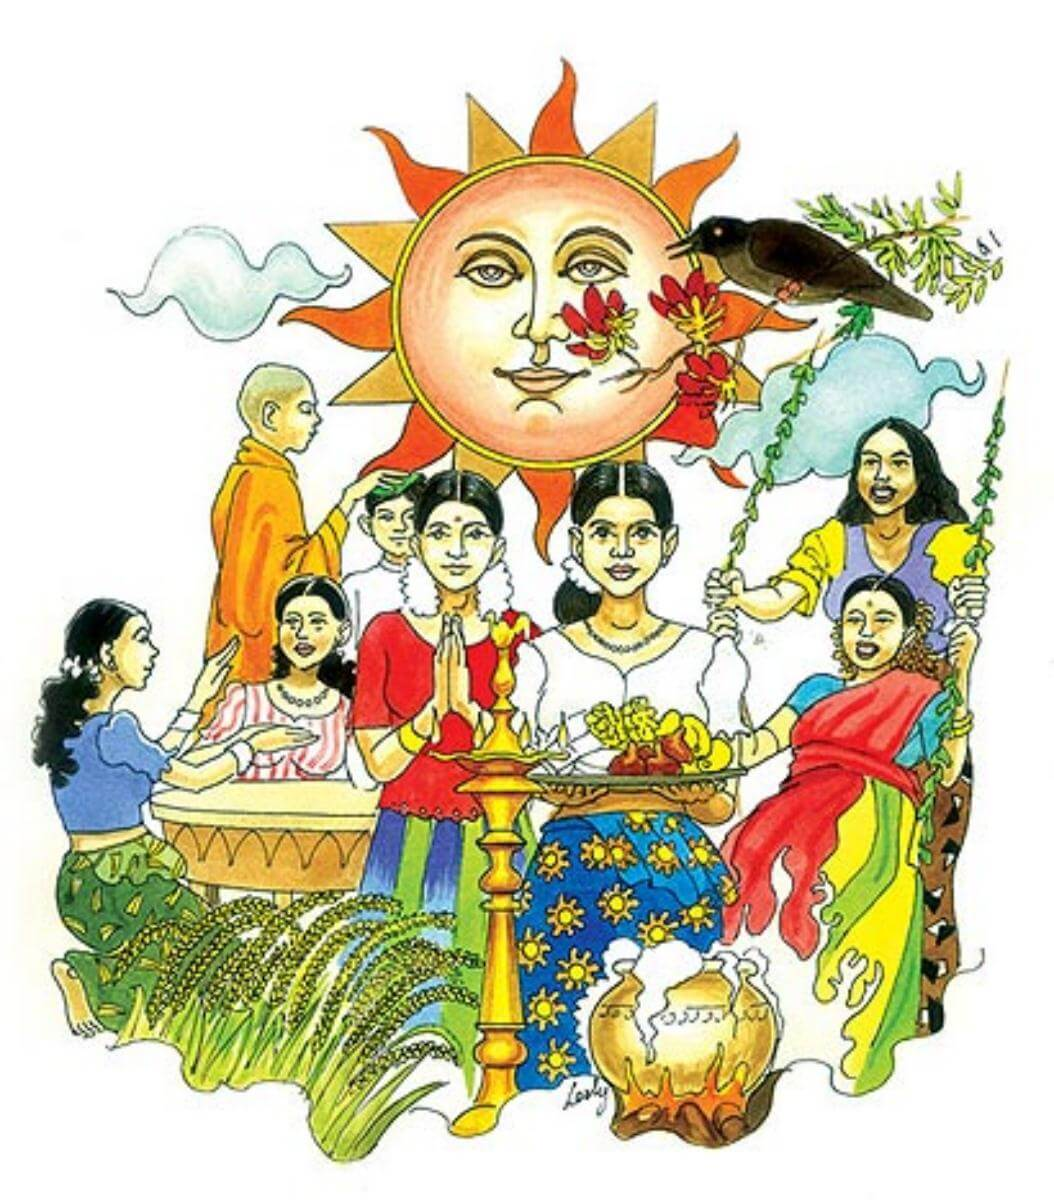 Sinhala and Tamil New Year in Sri Lanka.